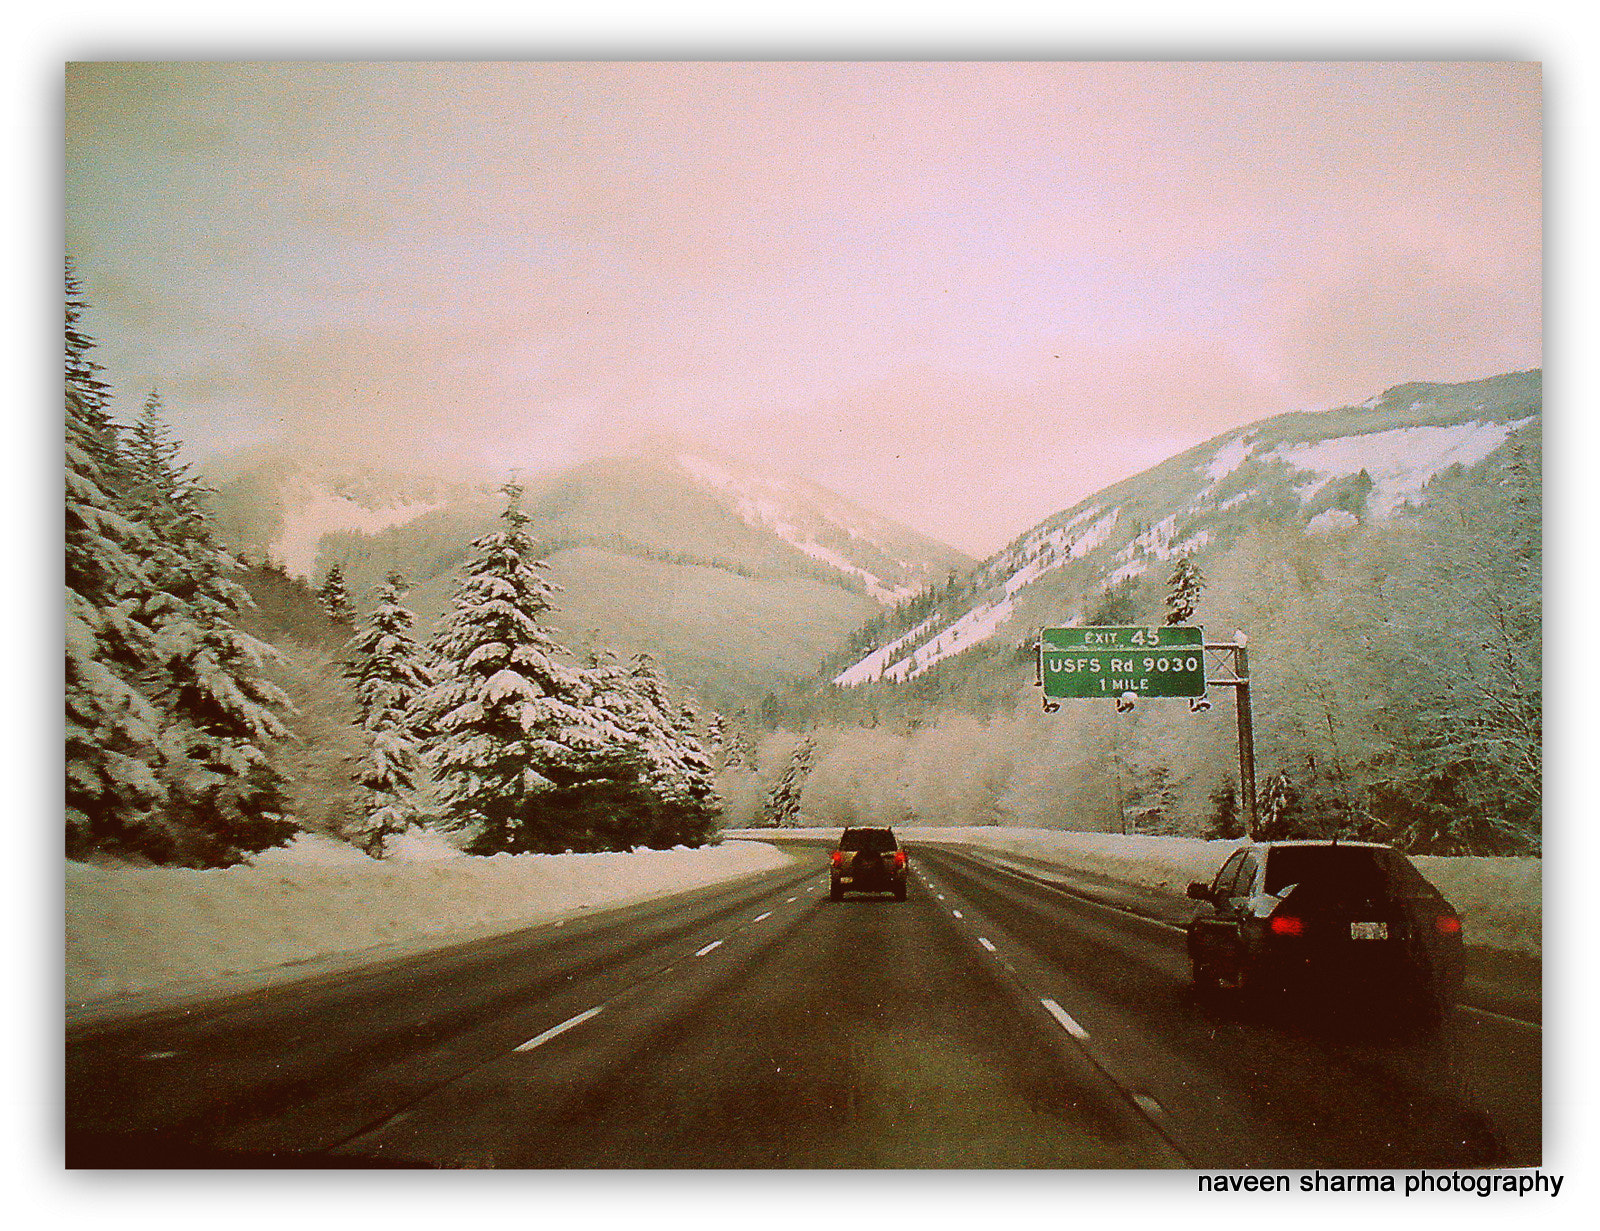 Photograph I-90 on way to snoqualmie pass by naveen sharma on 500px